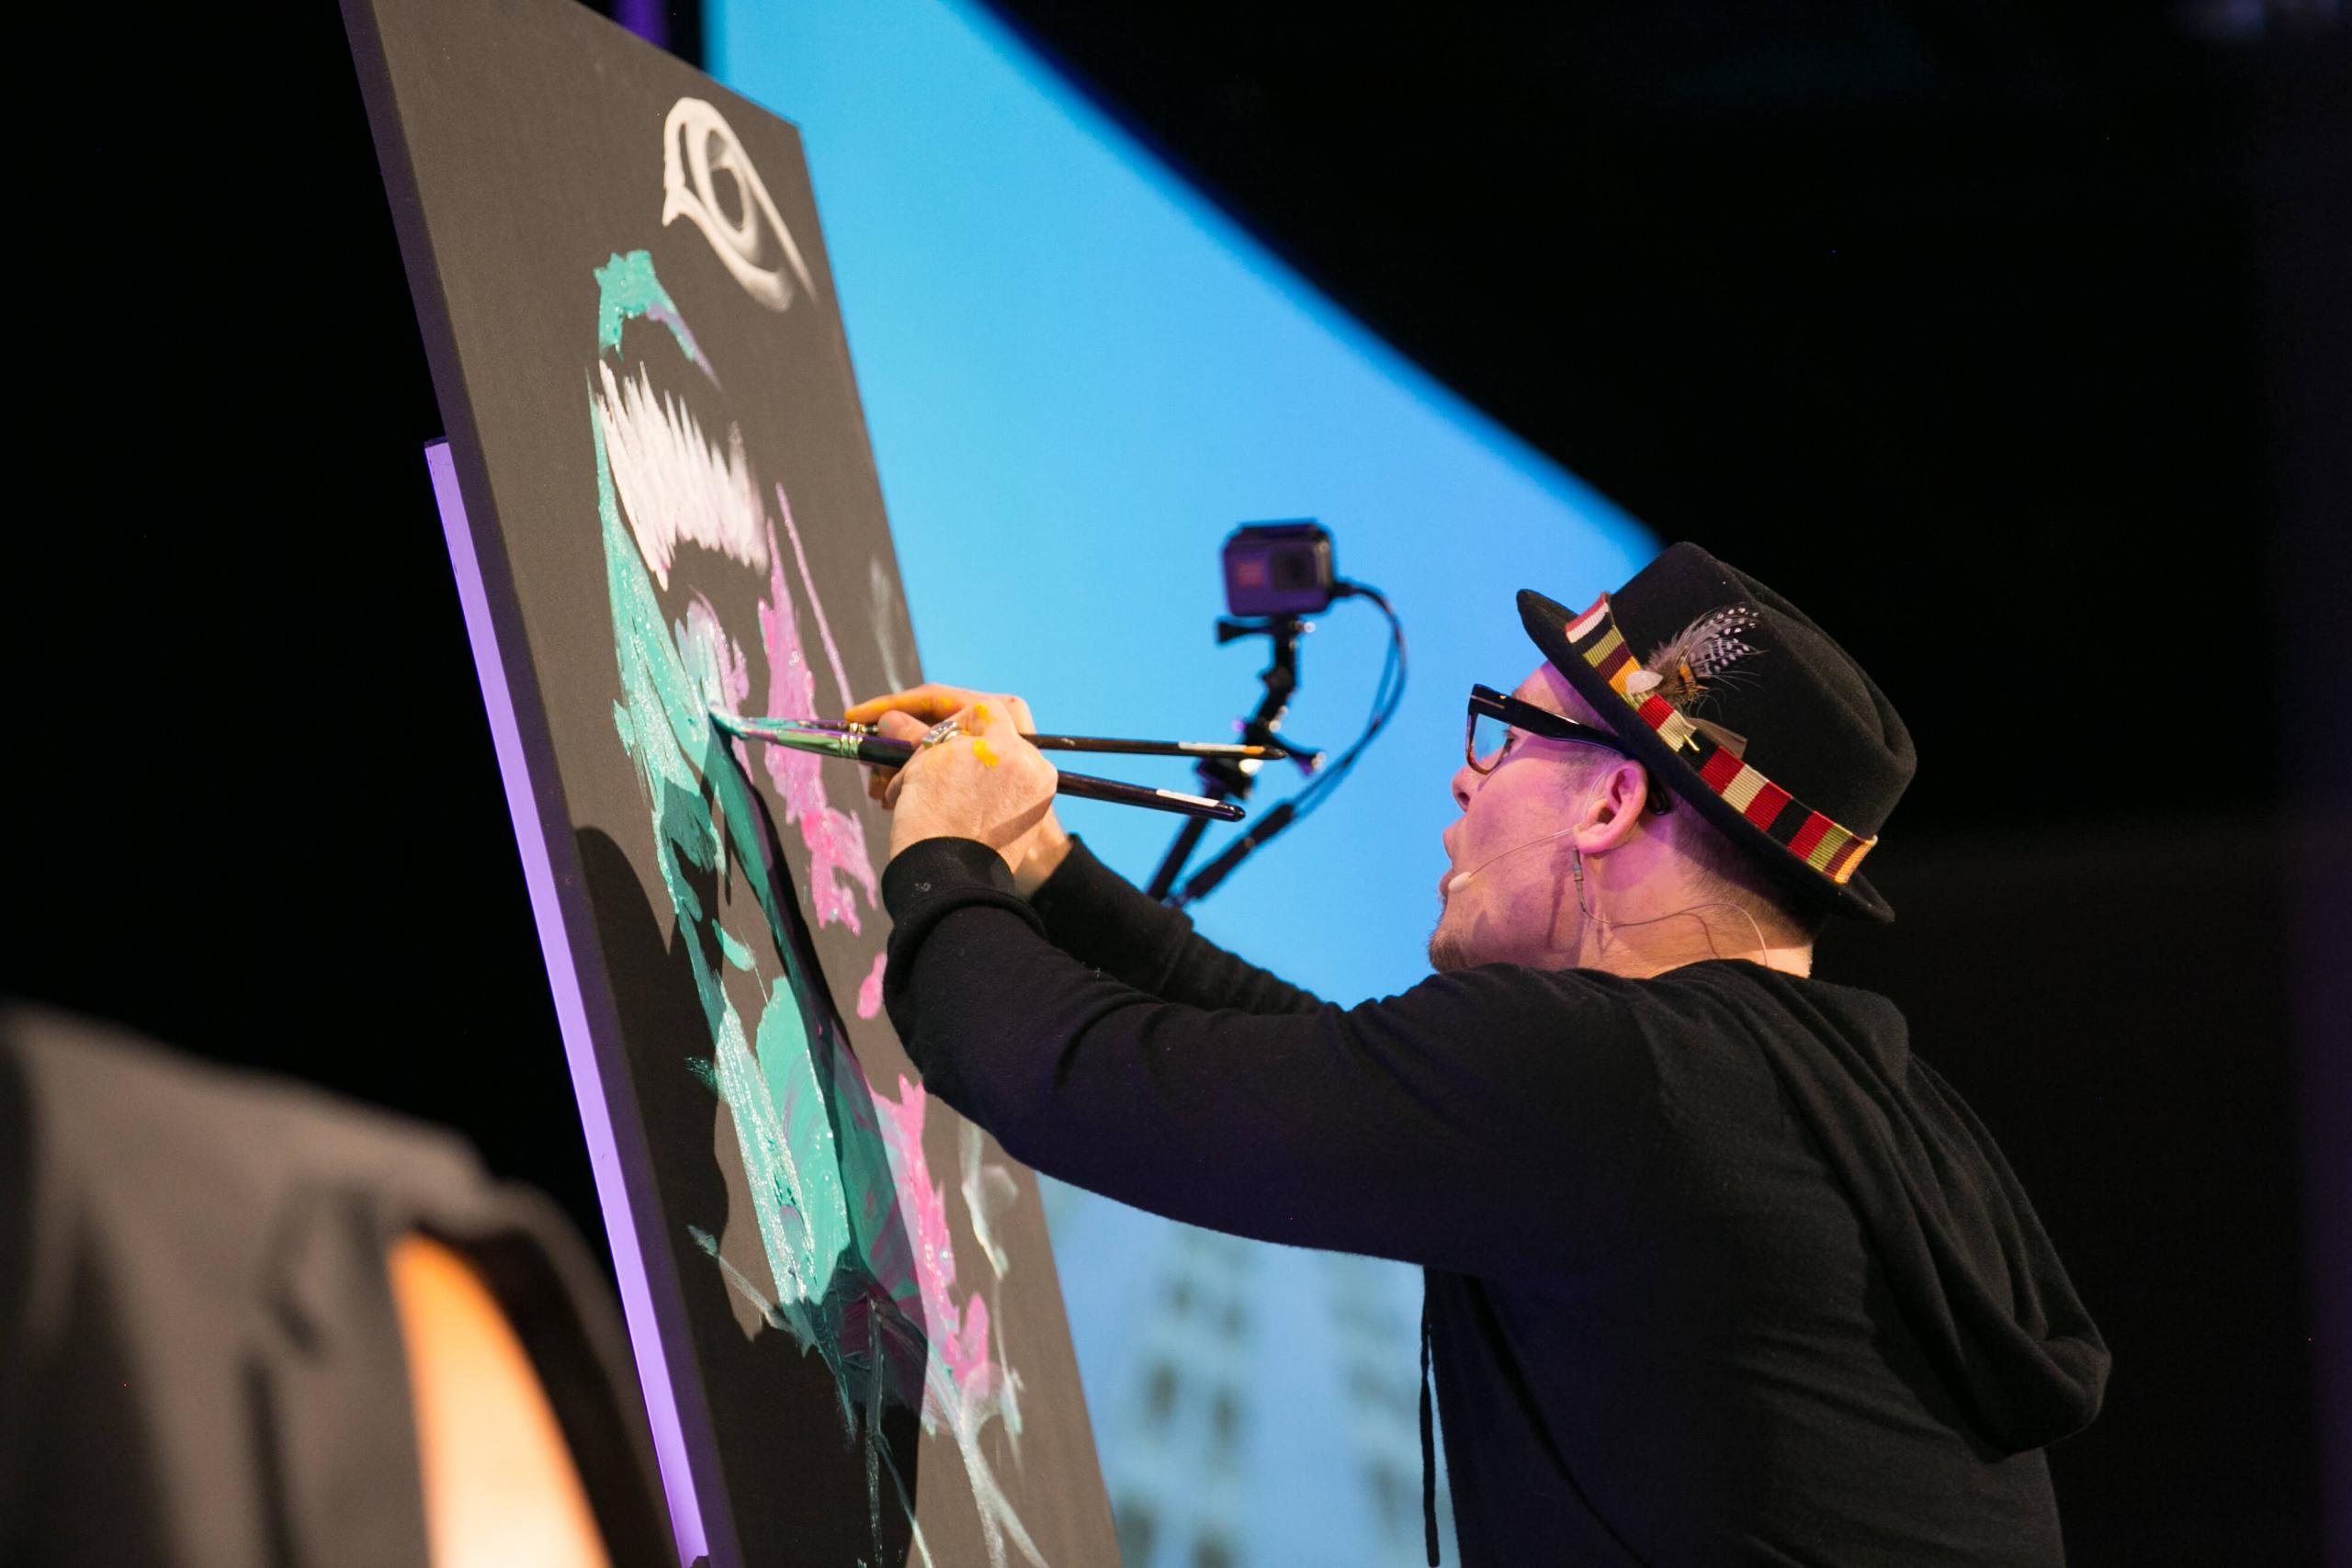 erik wahl painting a picture of albert einstein at a watermark event